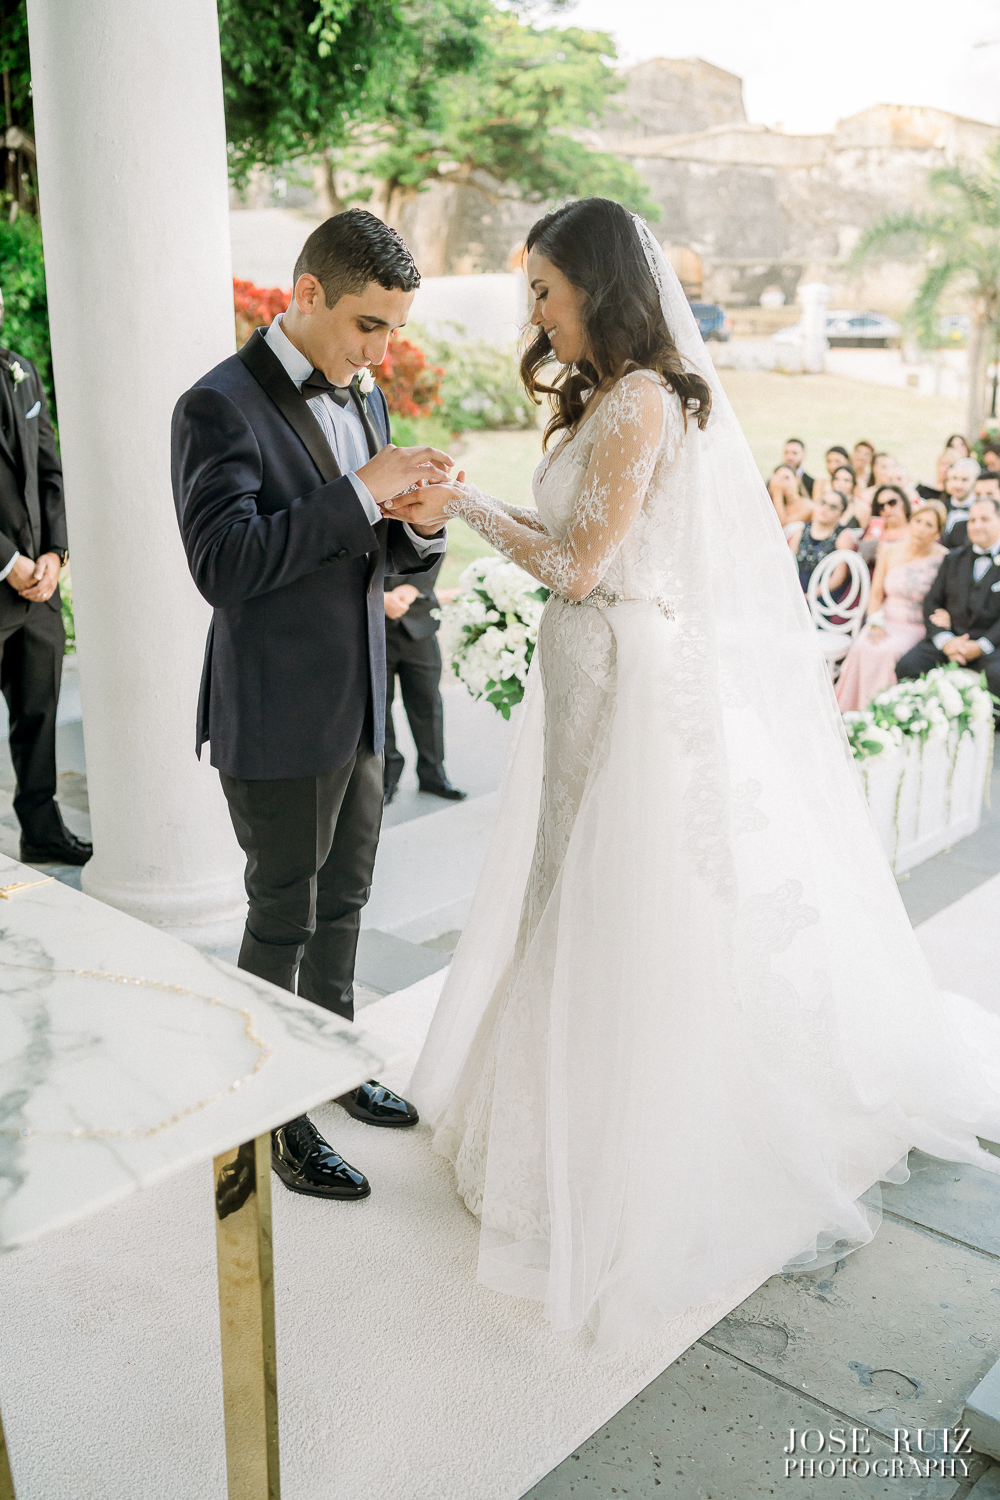 Jose Ruiz Photography- Veronica & Ivan-0138.jpg